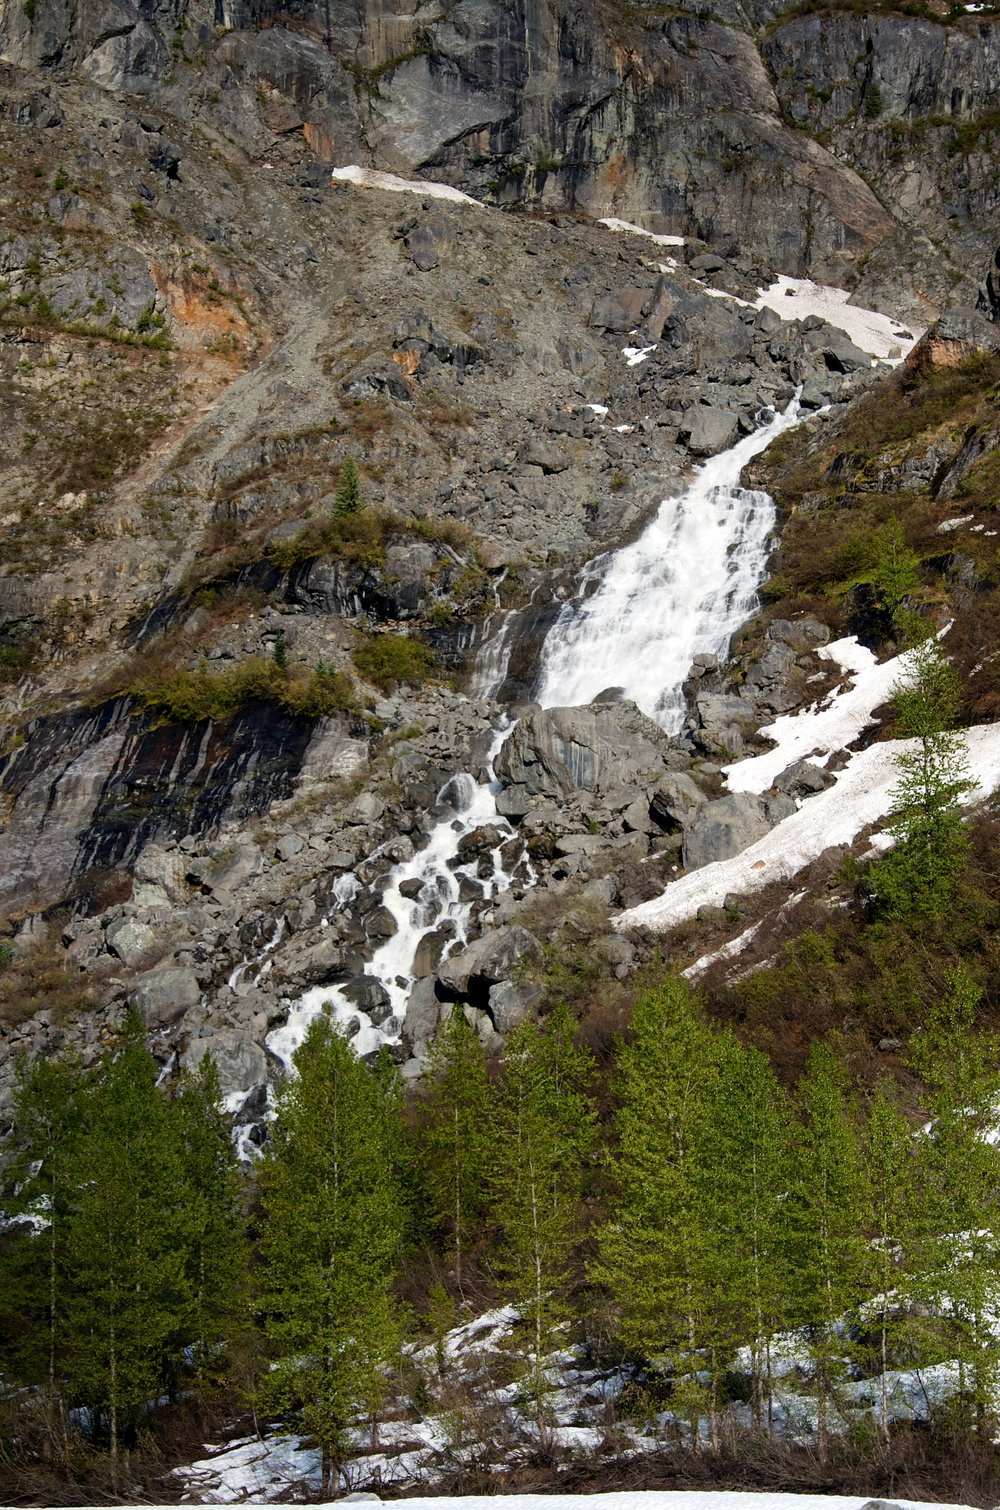 Some of the beautiful waterfalls cascading into the Tumult Valley.